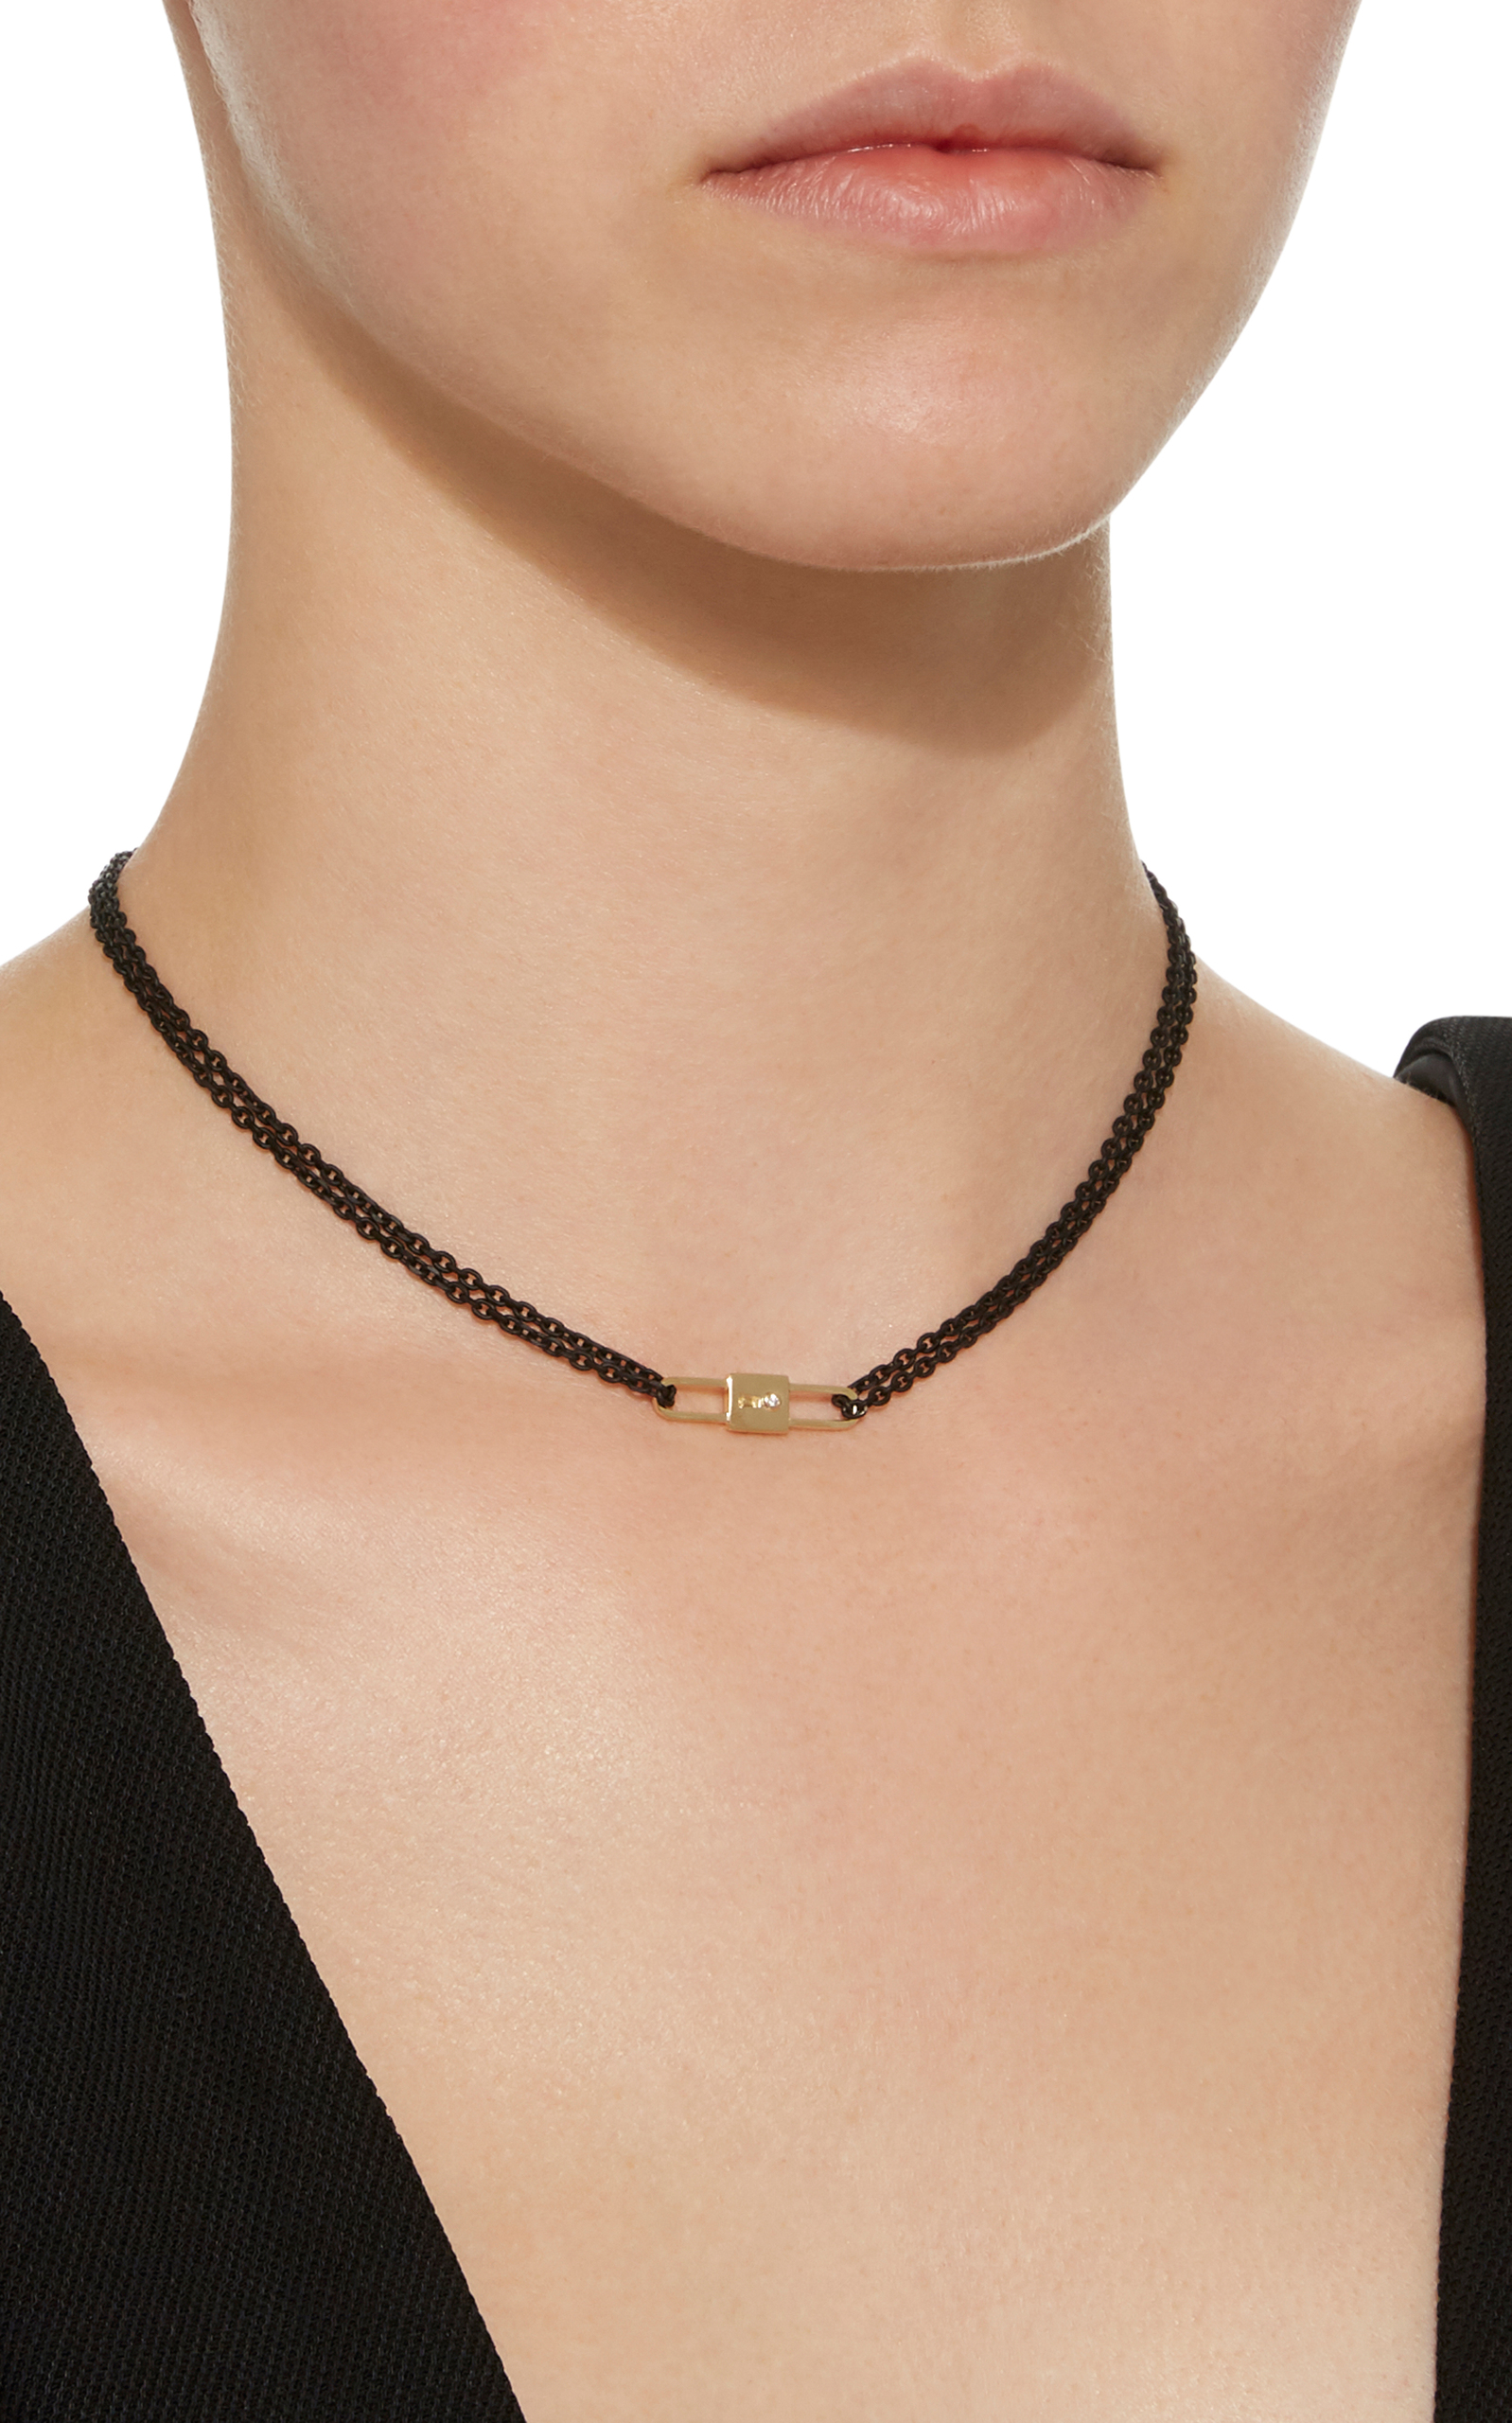 18K Yellow Gold Double Sided Lock Charm and Black Lacquered Stainless Steel Chain Bracelet Monica Rich Kosann 7QgY2t